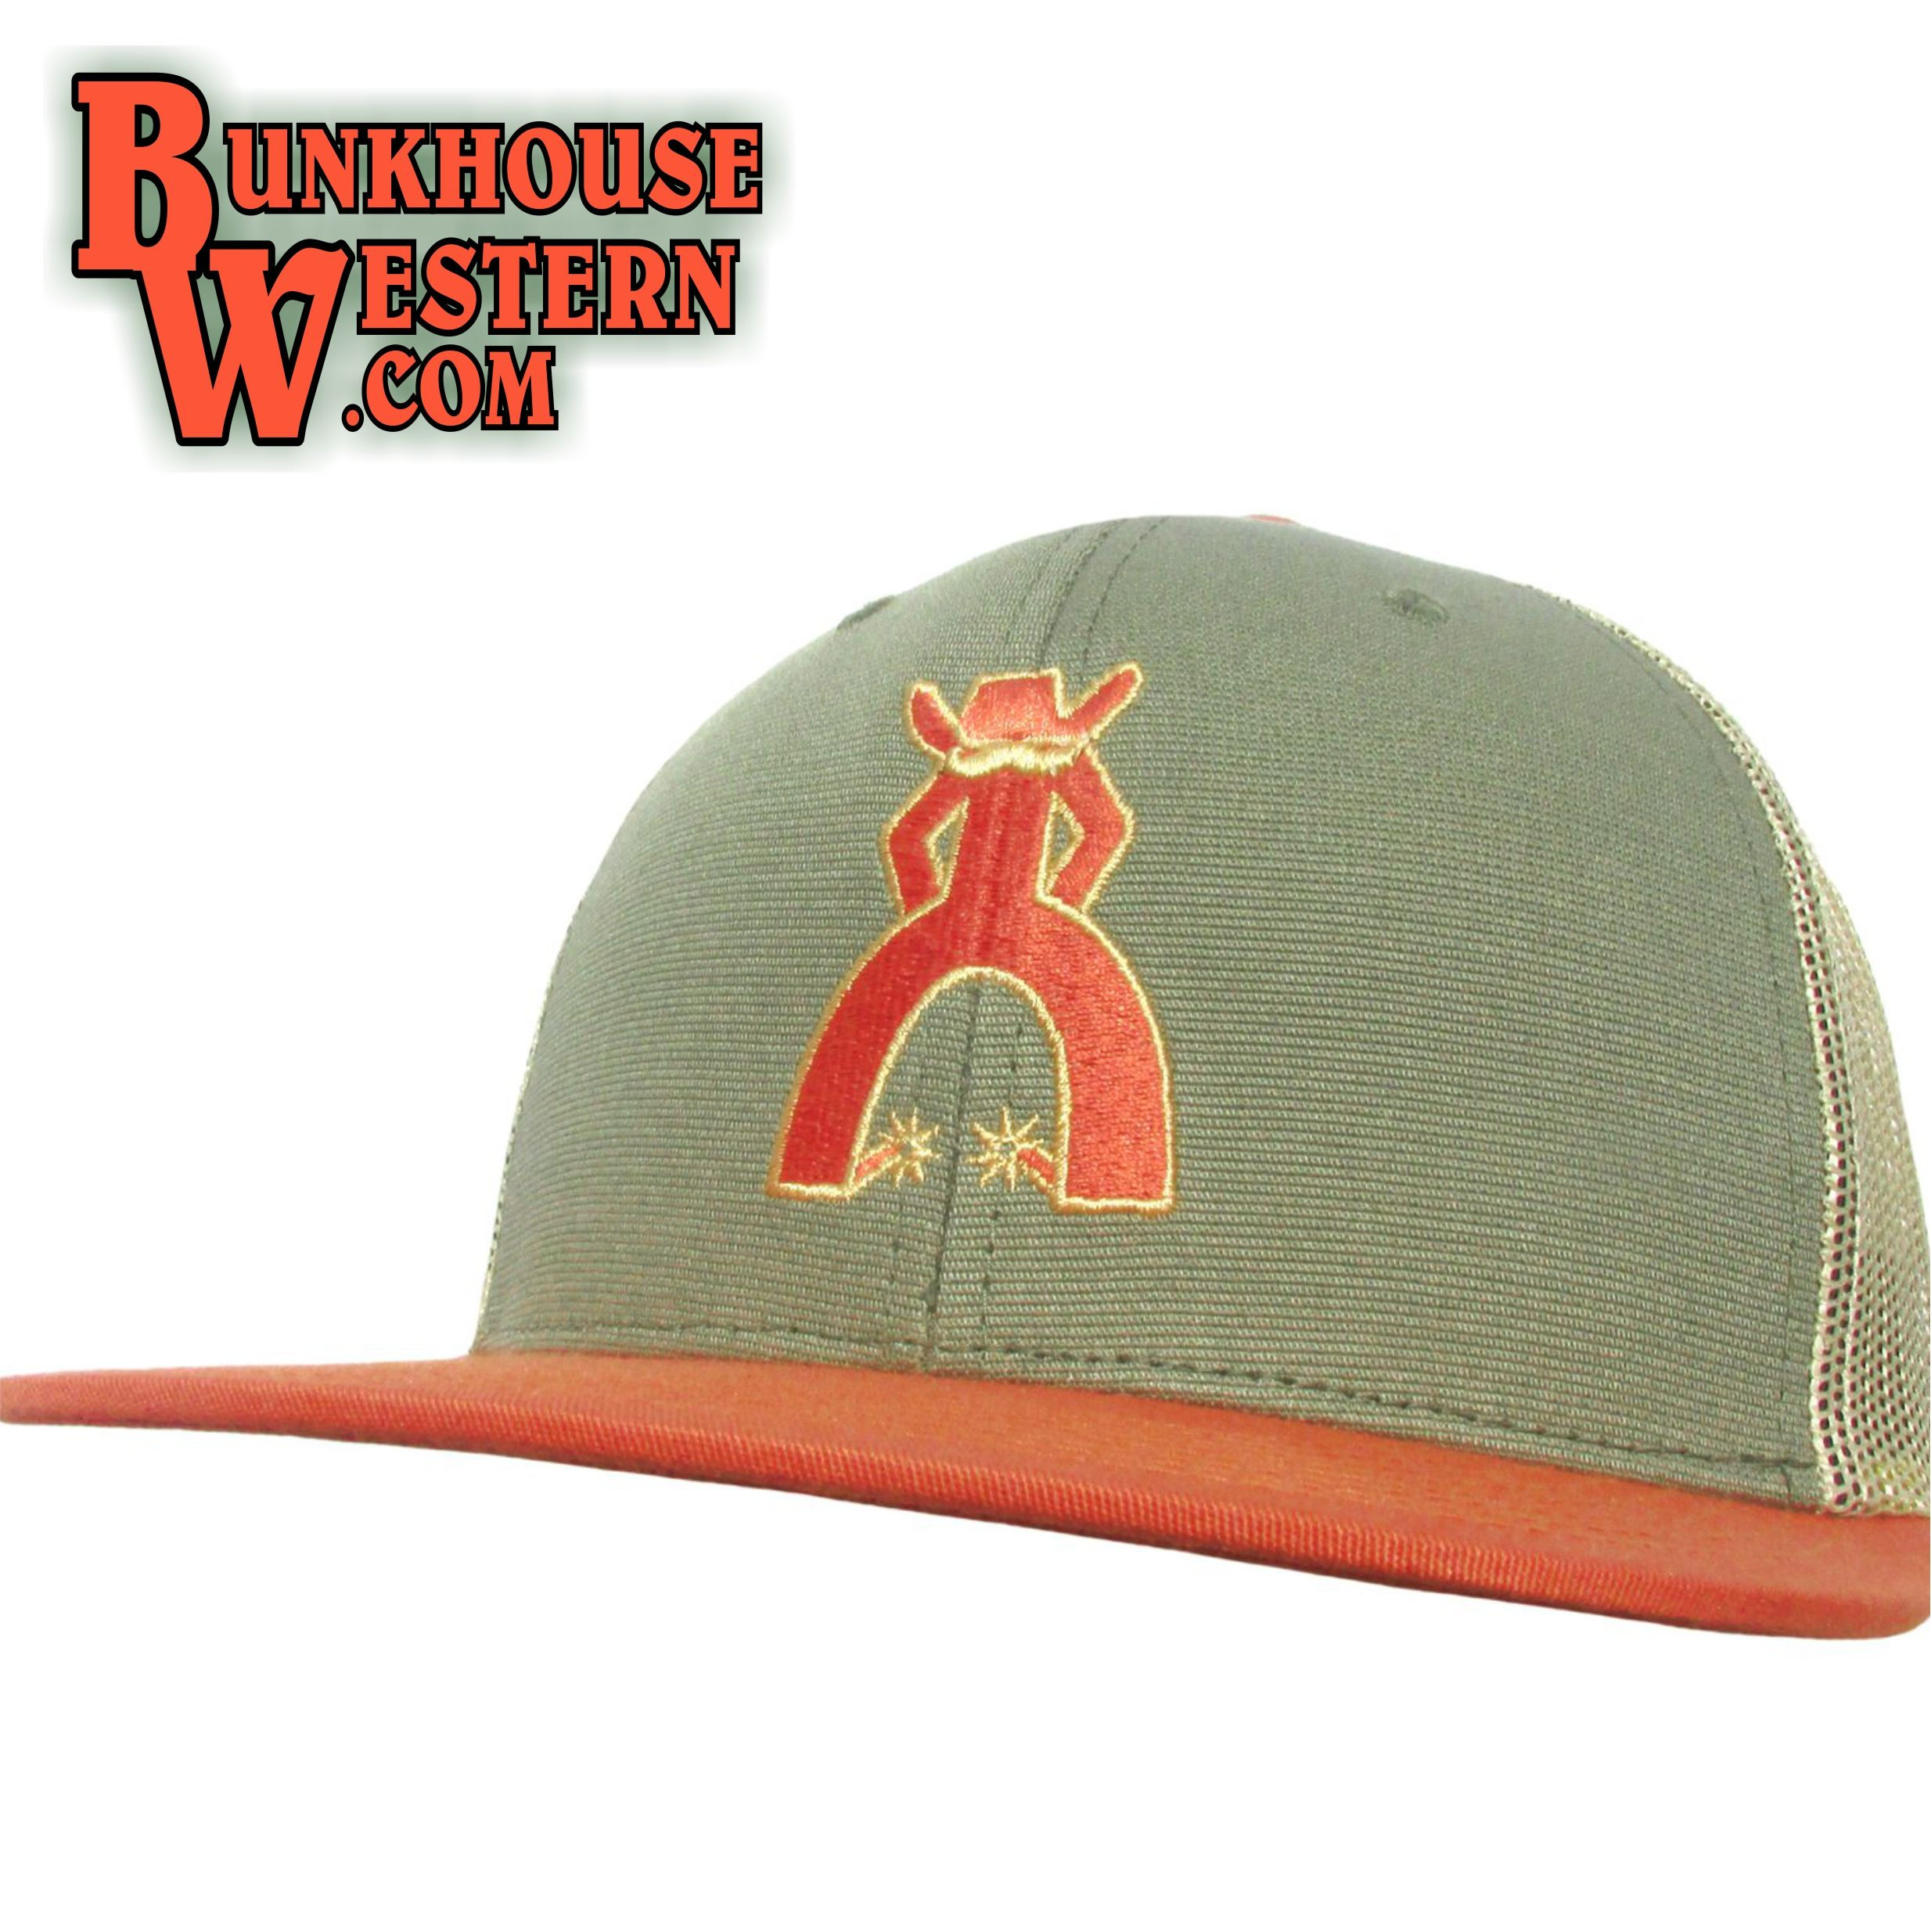 f4c7bc75 Punchy, Terlingua, Trucker Hat, Orange & Green, by Hooey, Cowboy, Cap,  $30.98